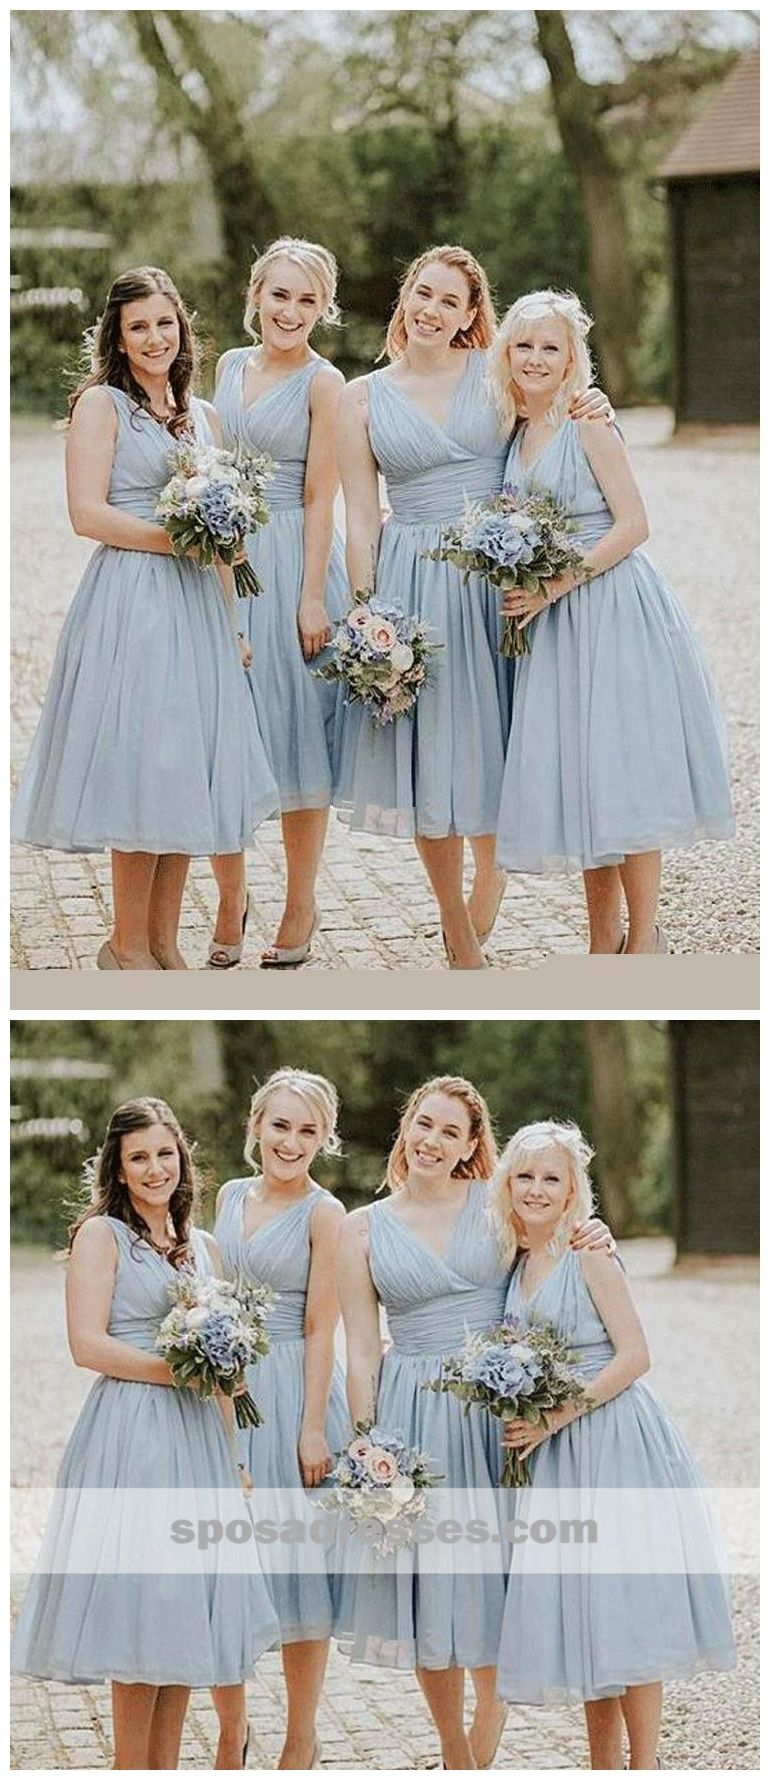 Dusty Blue V Neck Chiffon Short Cheap Bridesmaid Dresses Online Wg346 B Dusty Blue Bridesmaid Dresses Blue Bridesmaid Dresses Short Short Bridesmaid Dresses